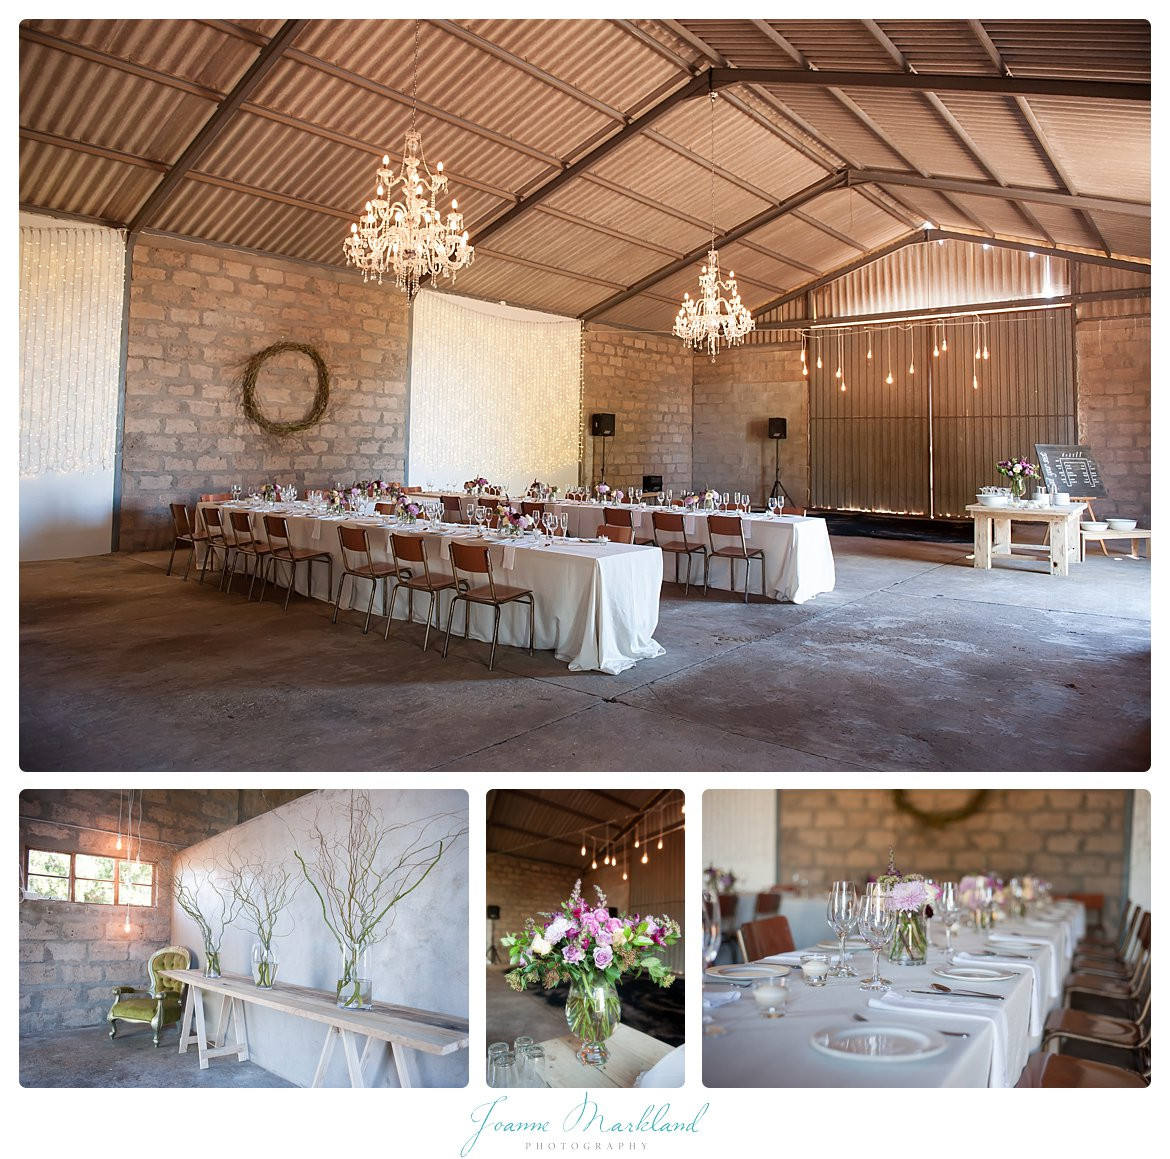 boorwater-wedding-hopefield-west-coast-cape-town-joanne-markland-photography-005